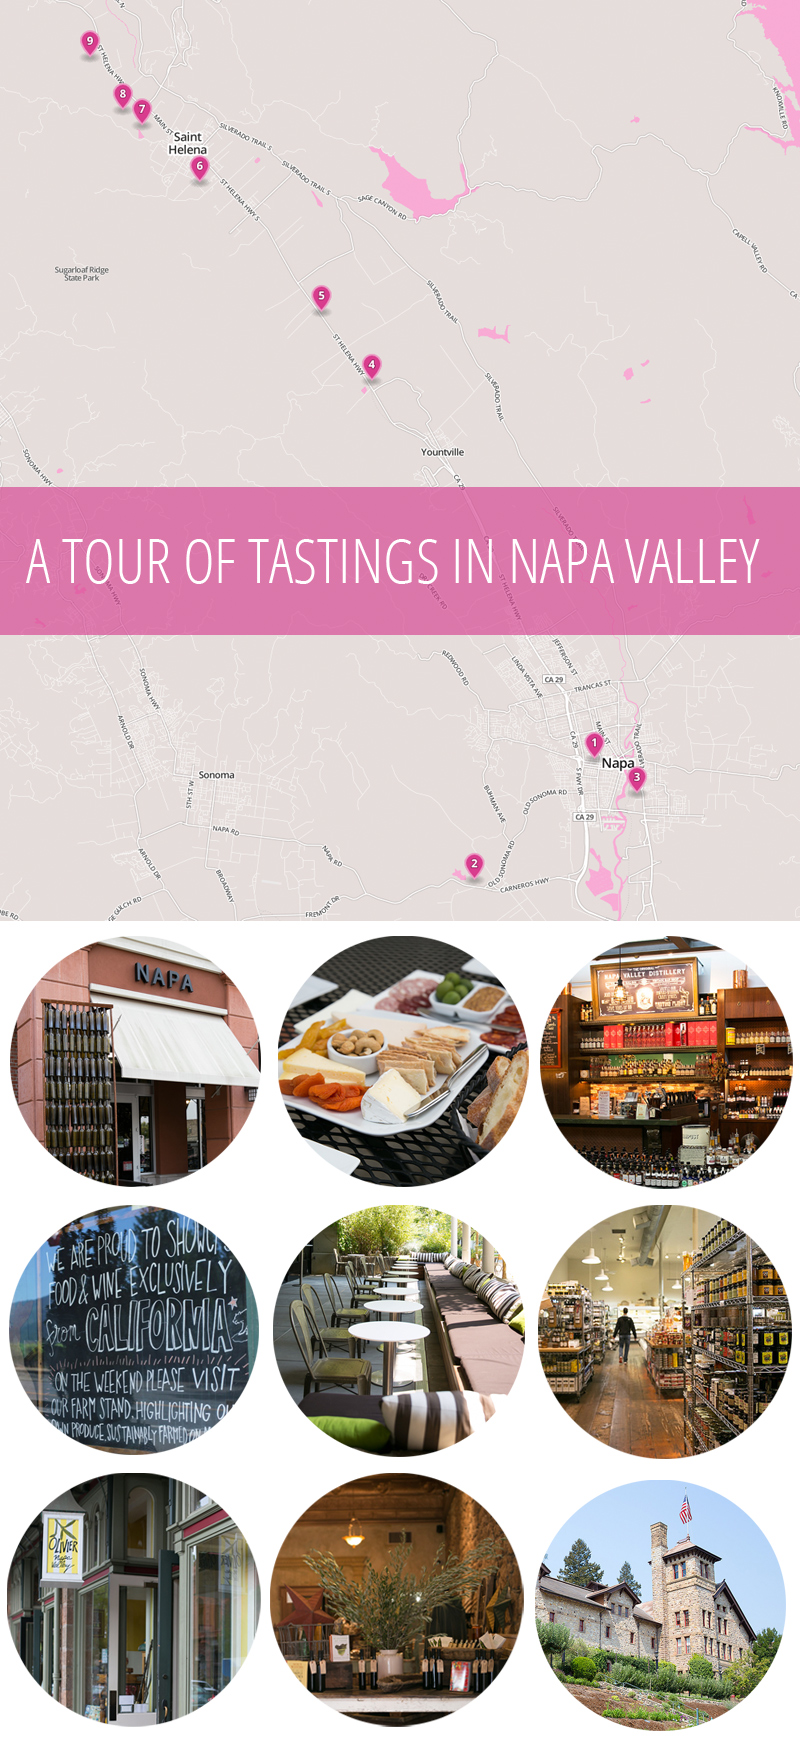 A Tour of Tastings of the Non-Wine Variety in Napa Valley